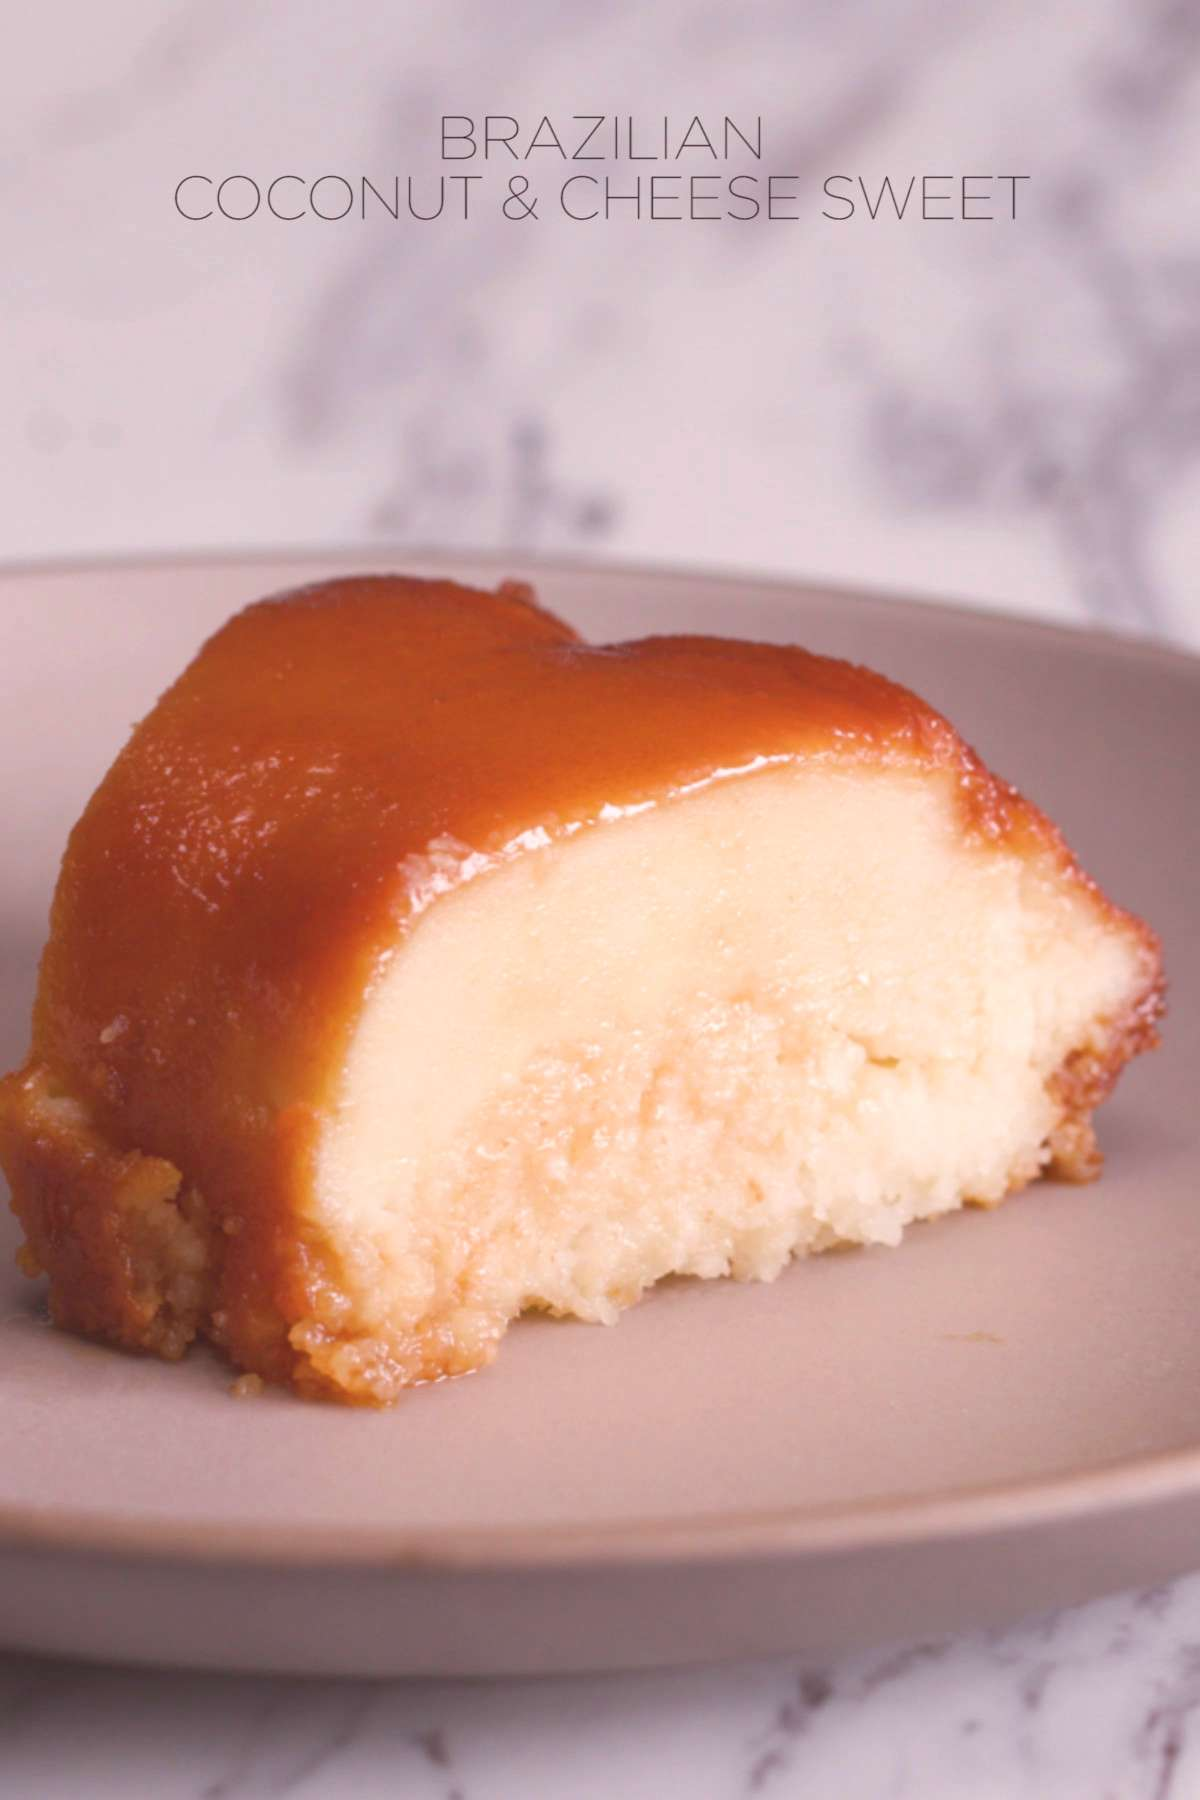 Brazilian Coconut and Cheese Sweet Parmesan in your dessert? We promise you, it's delicious! This a